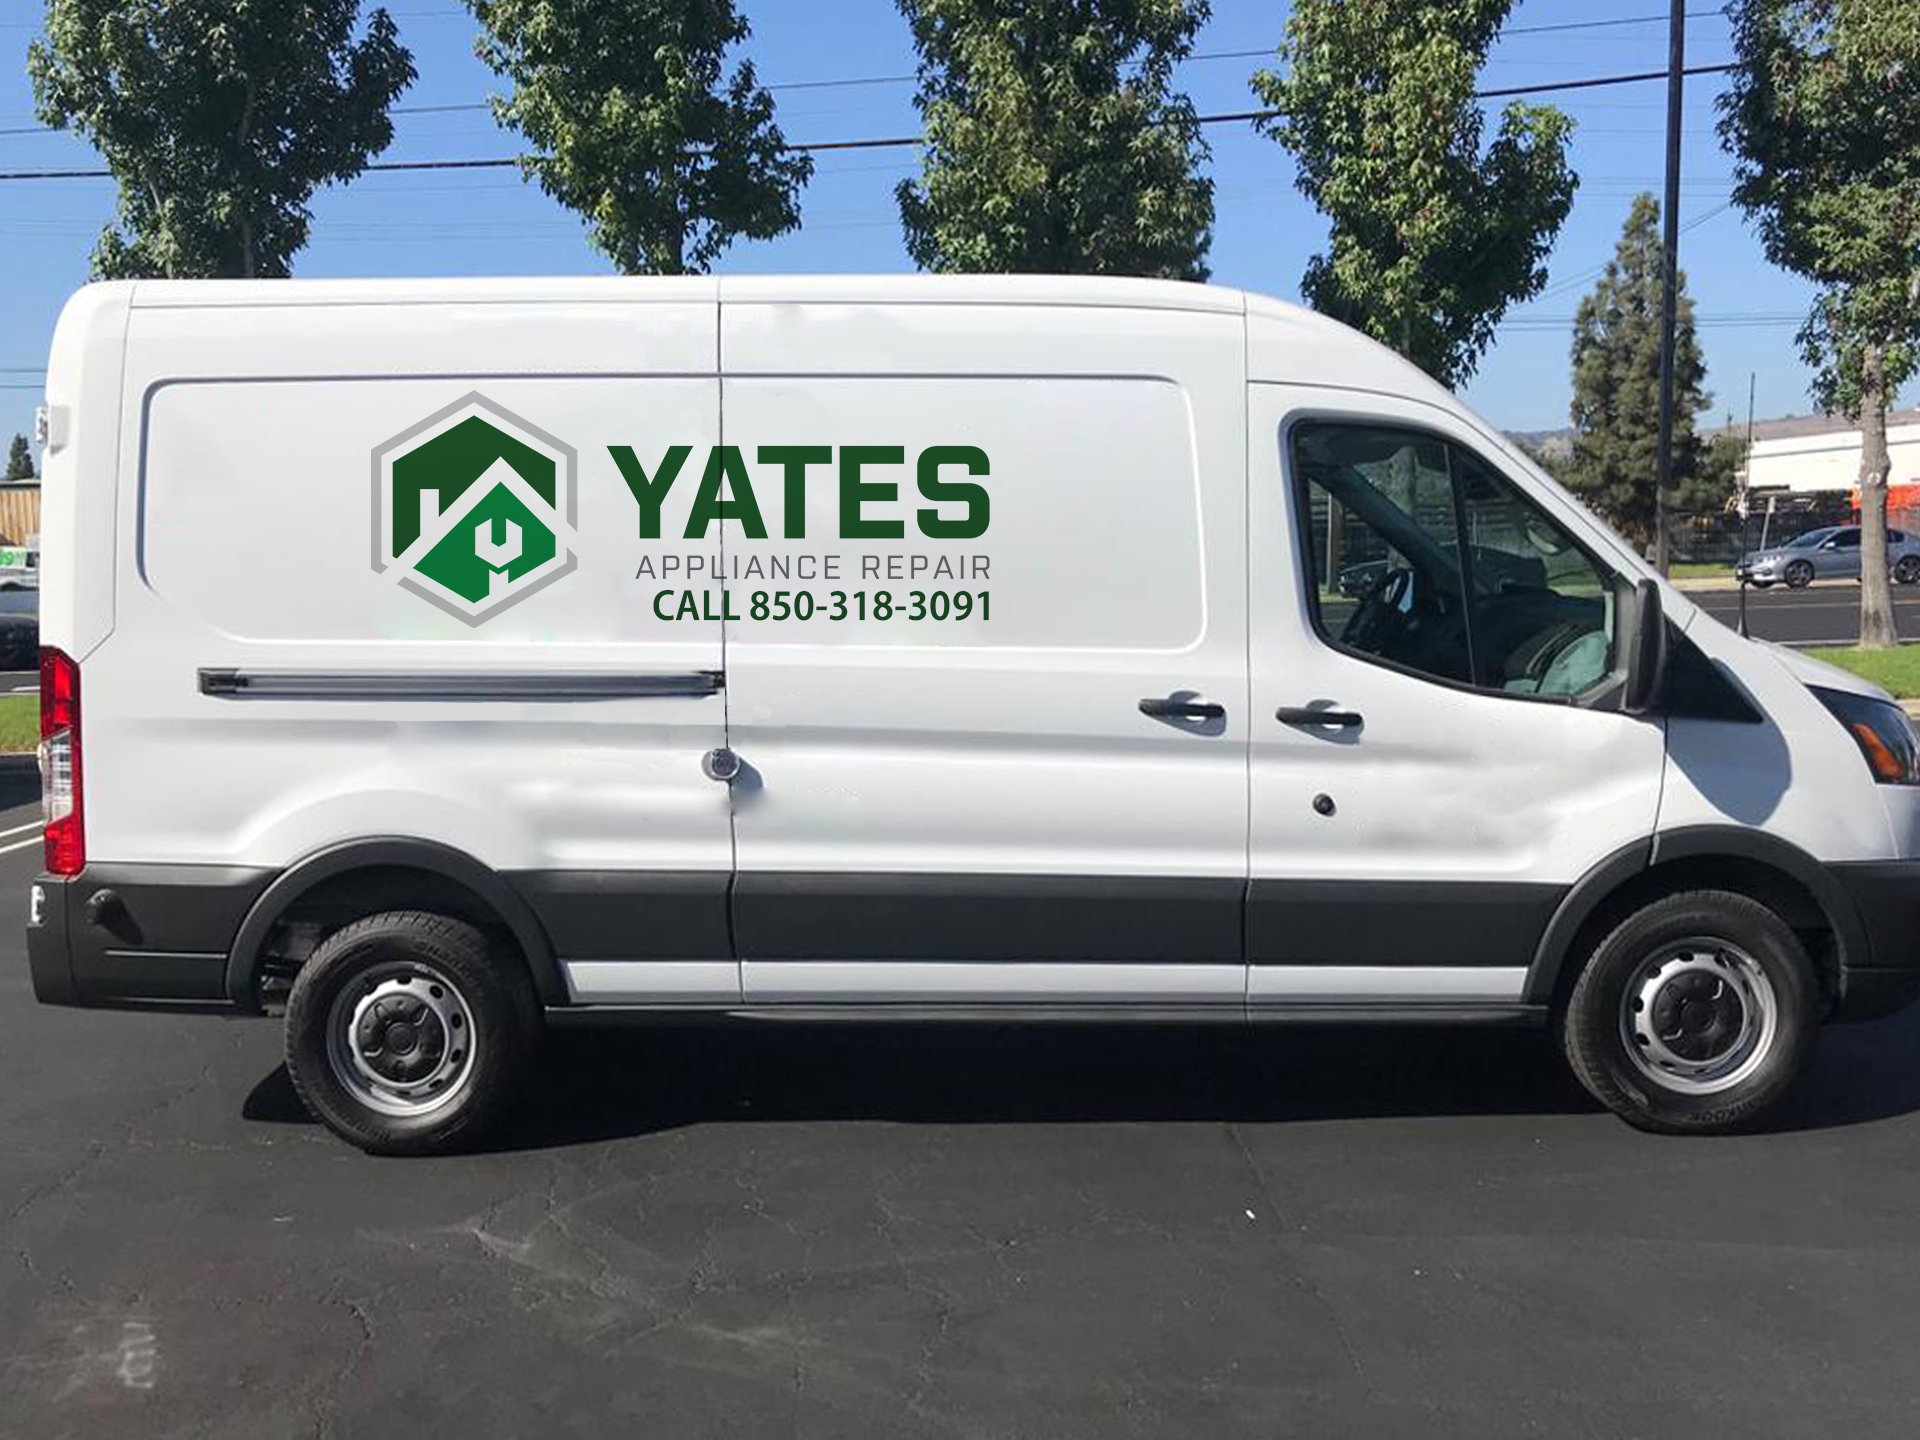 yates appliance repair in tallahassee fl